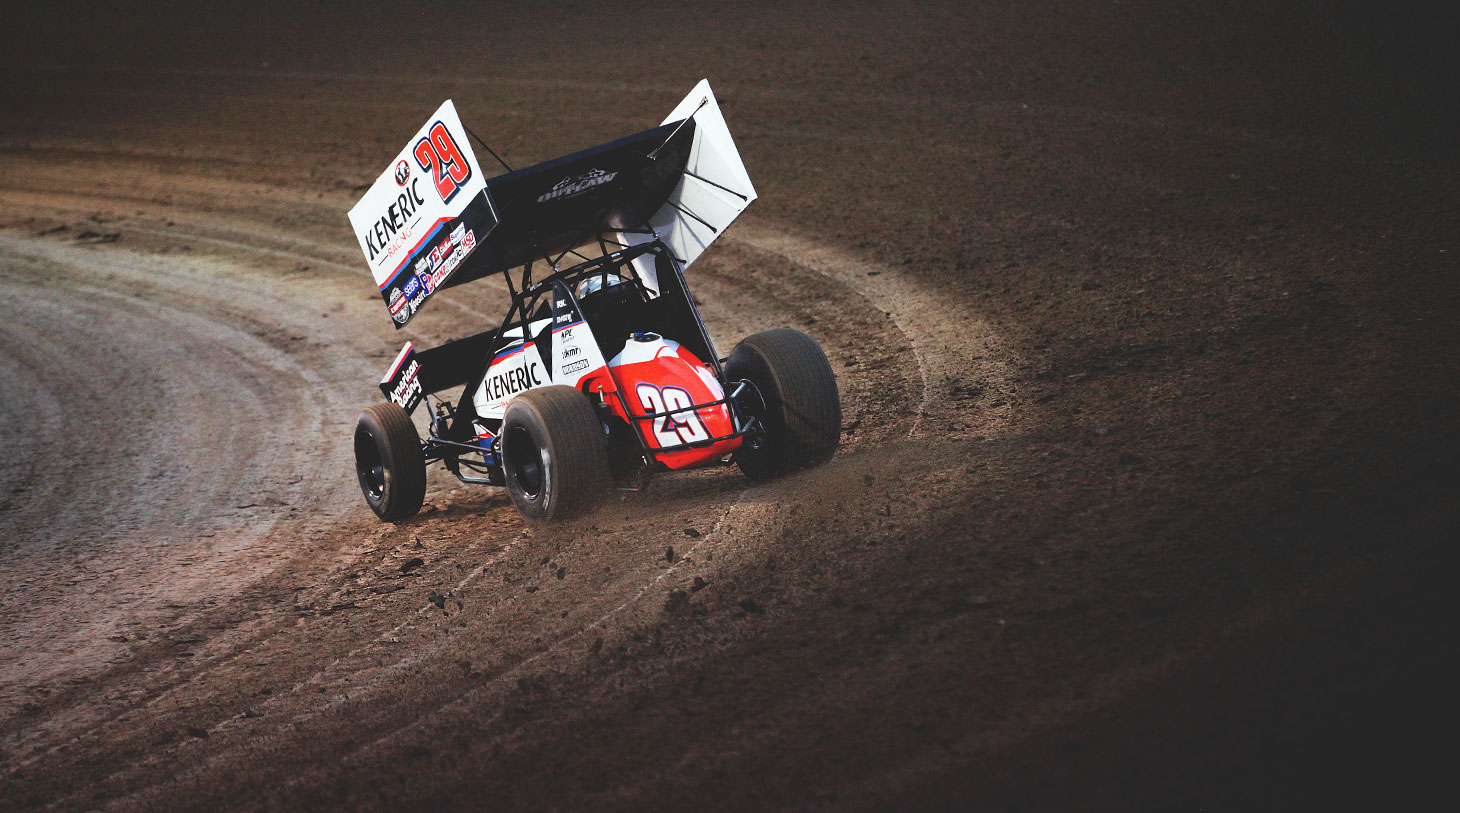 Kerry Madsen driving the Keneric American Racing; no.29 sprint car | photo: Jeffrey Turford